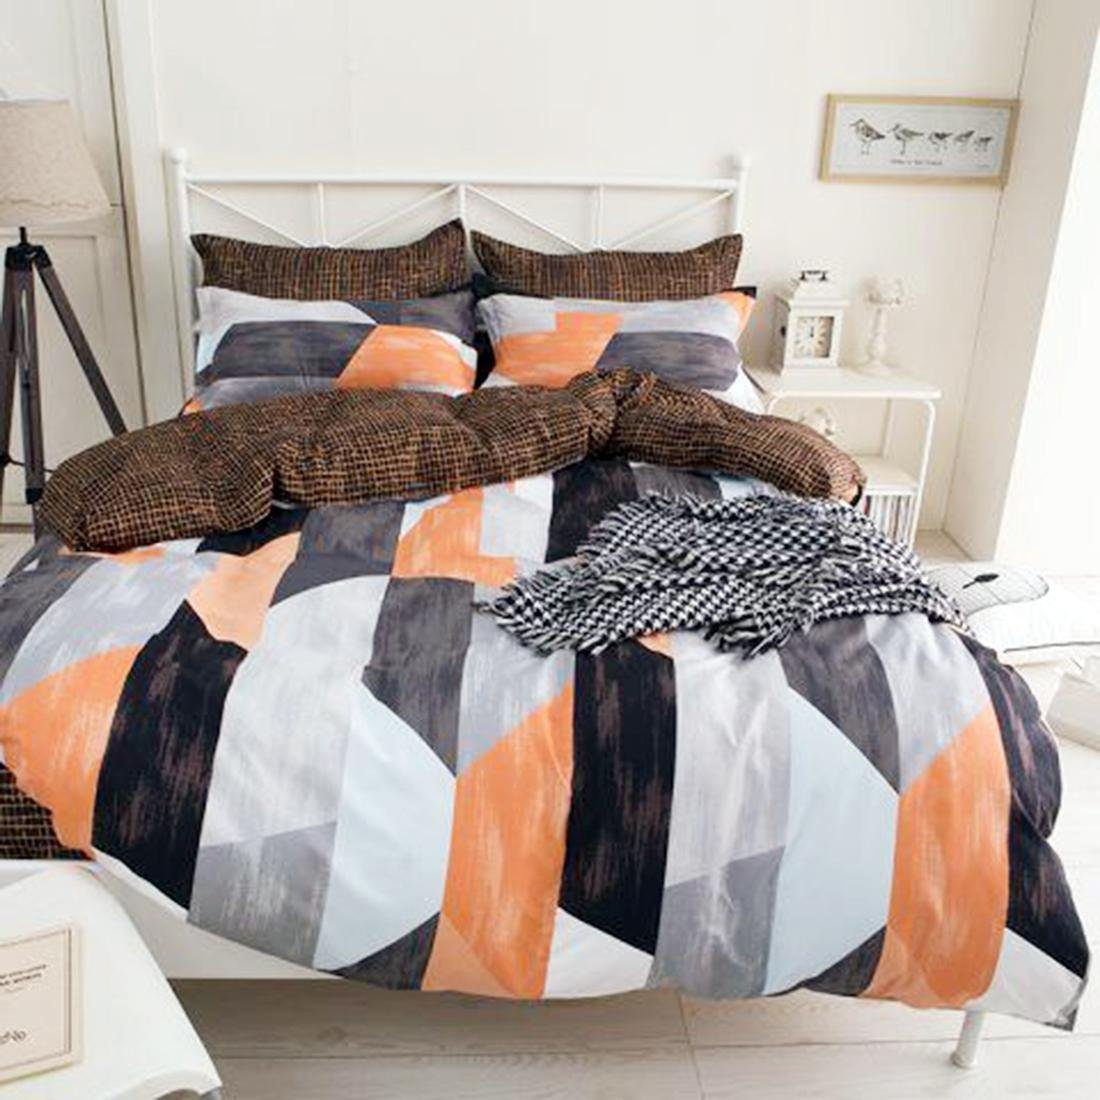 MSE Model(Made In India) Stylish Zurich Print Comforter Cotton Double Bed Comforter (Size:230250 Cm Approx) With Bed Sheets And 2 Pillow Queen Multi